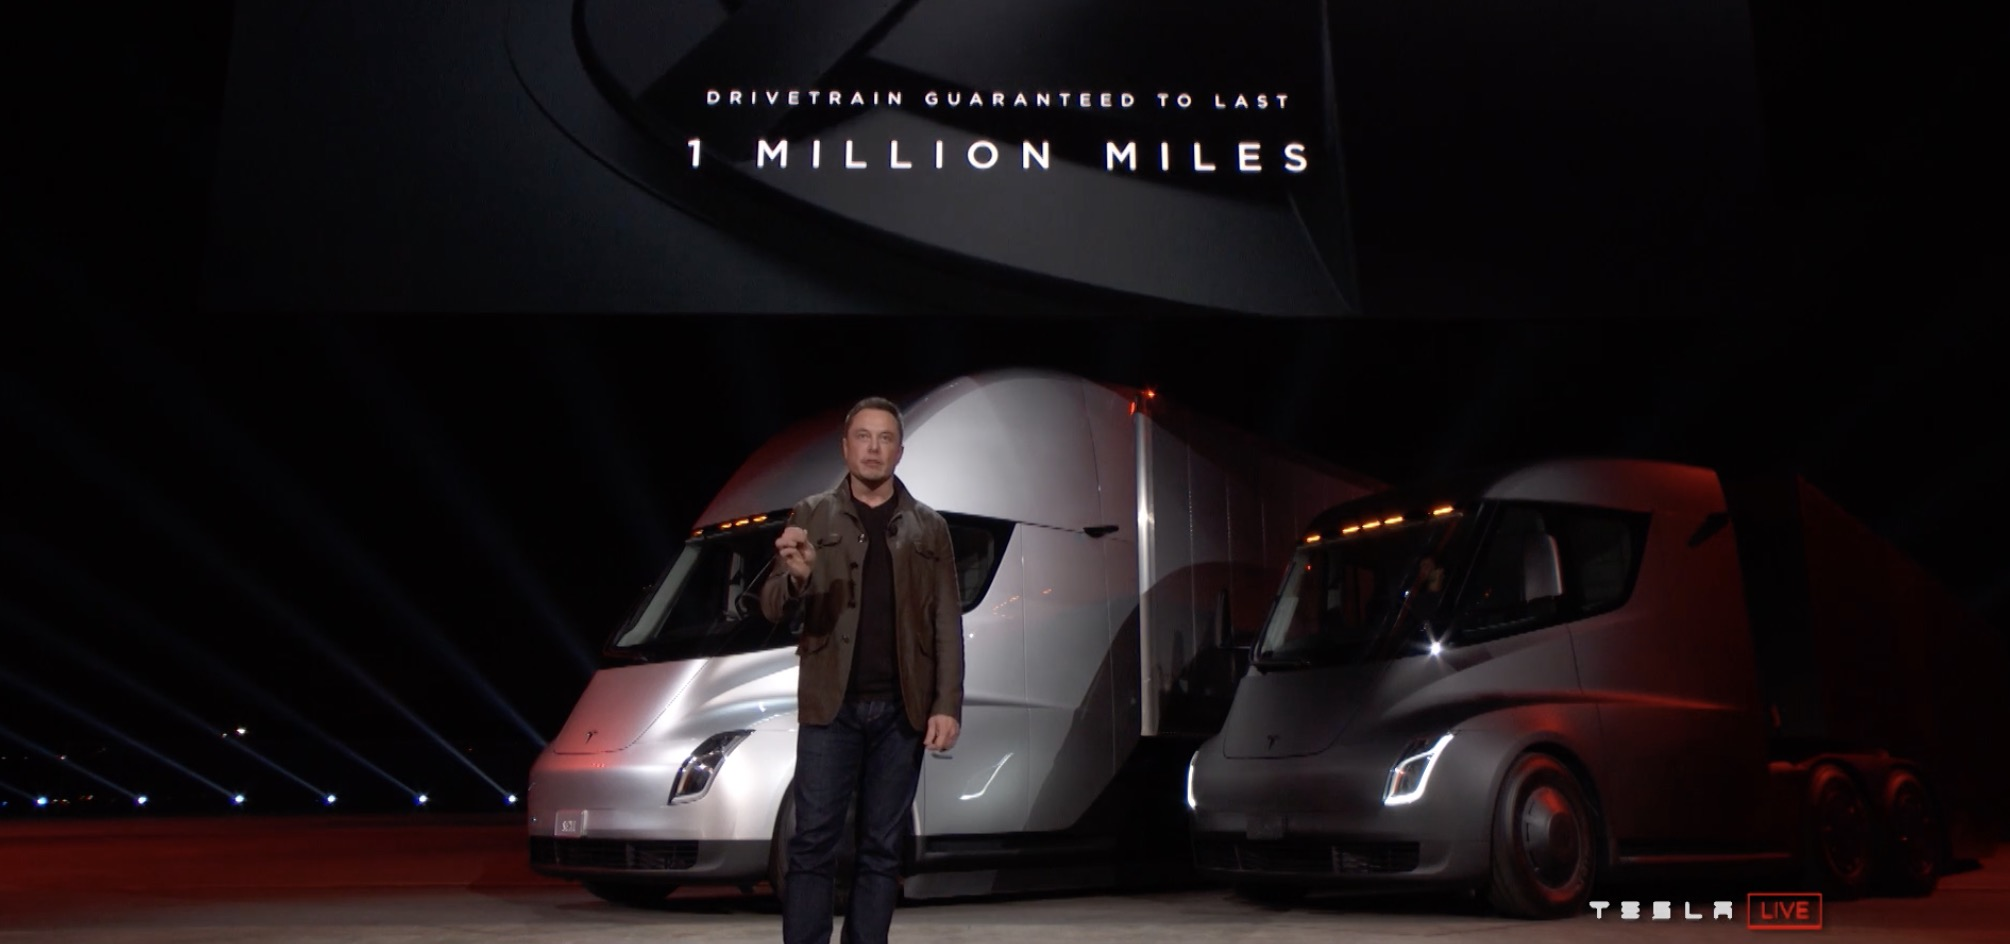 Tesla Semi is clearing a path for the goal of a 1 million-mile electric drivetrain